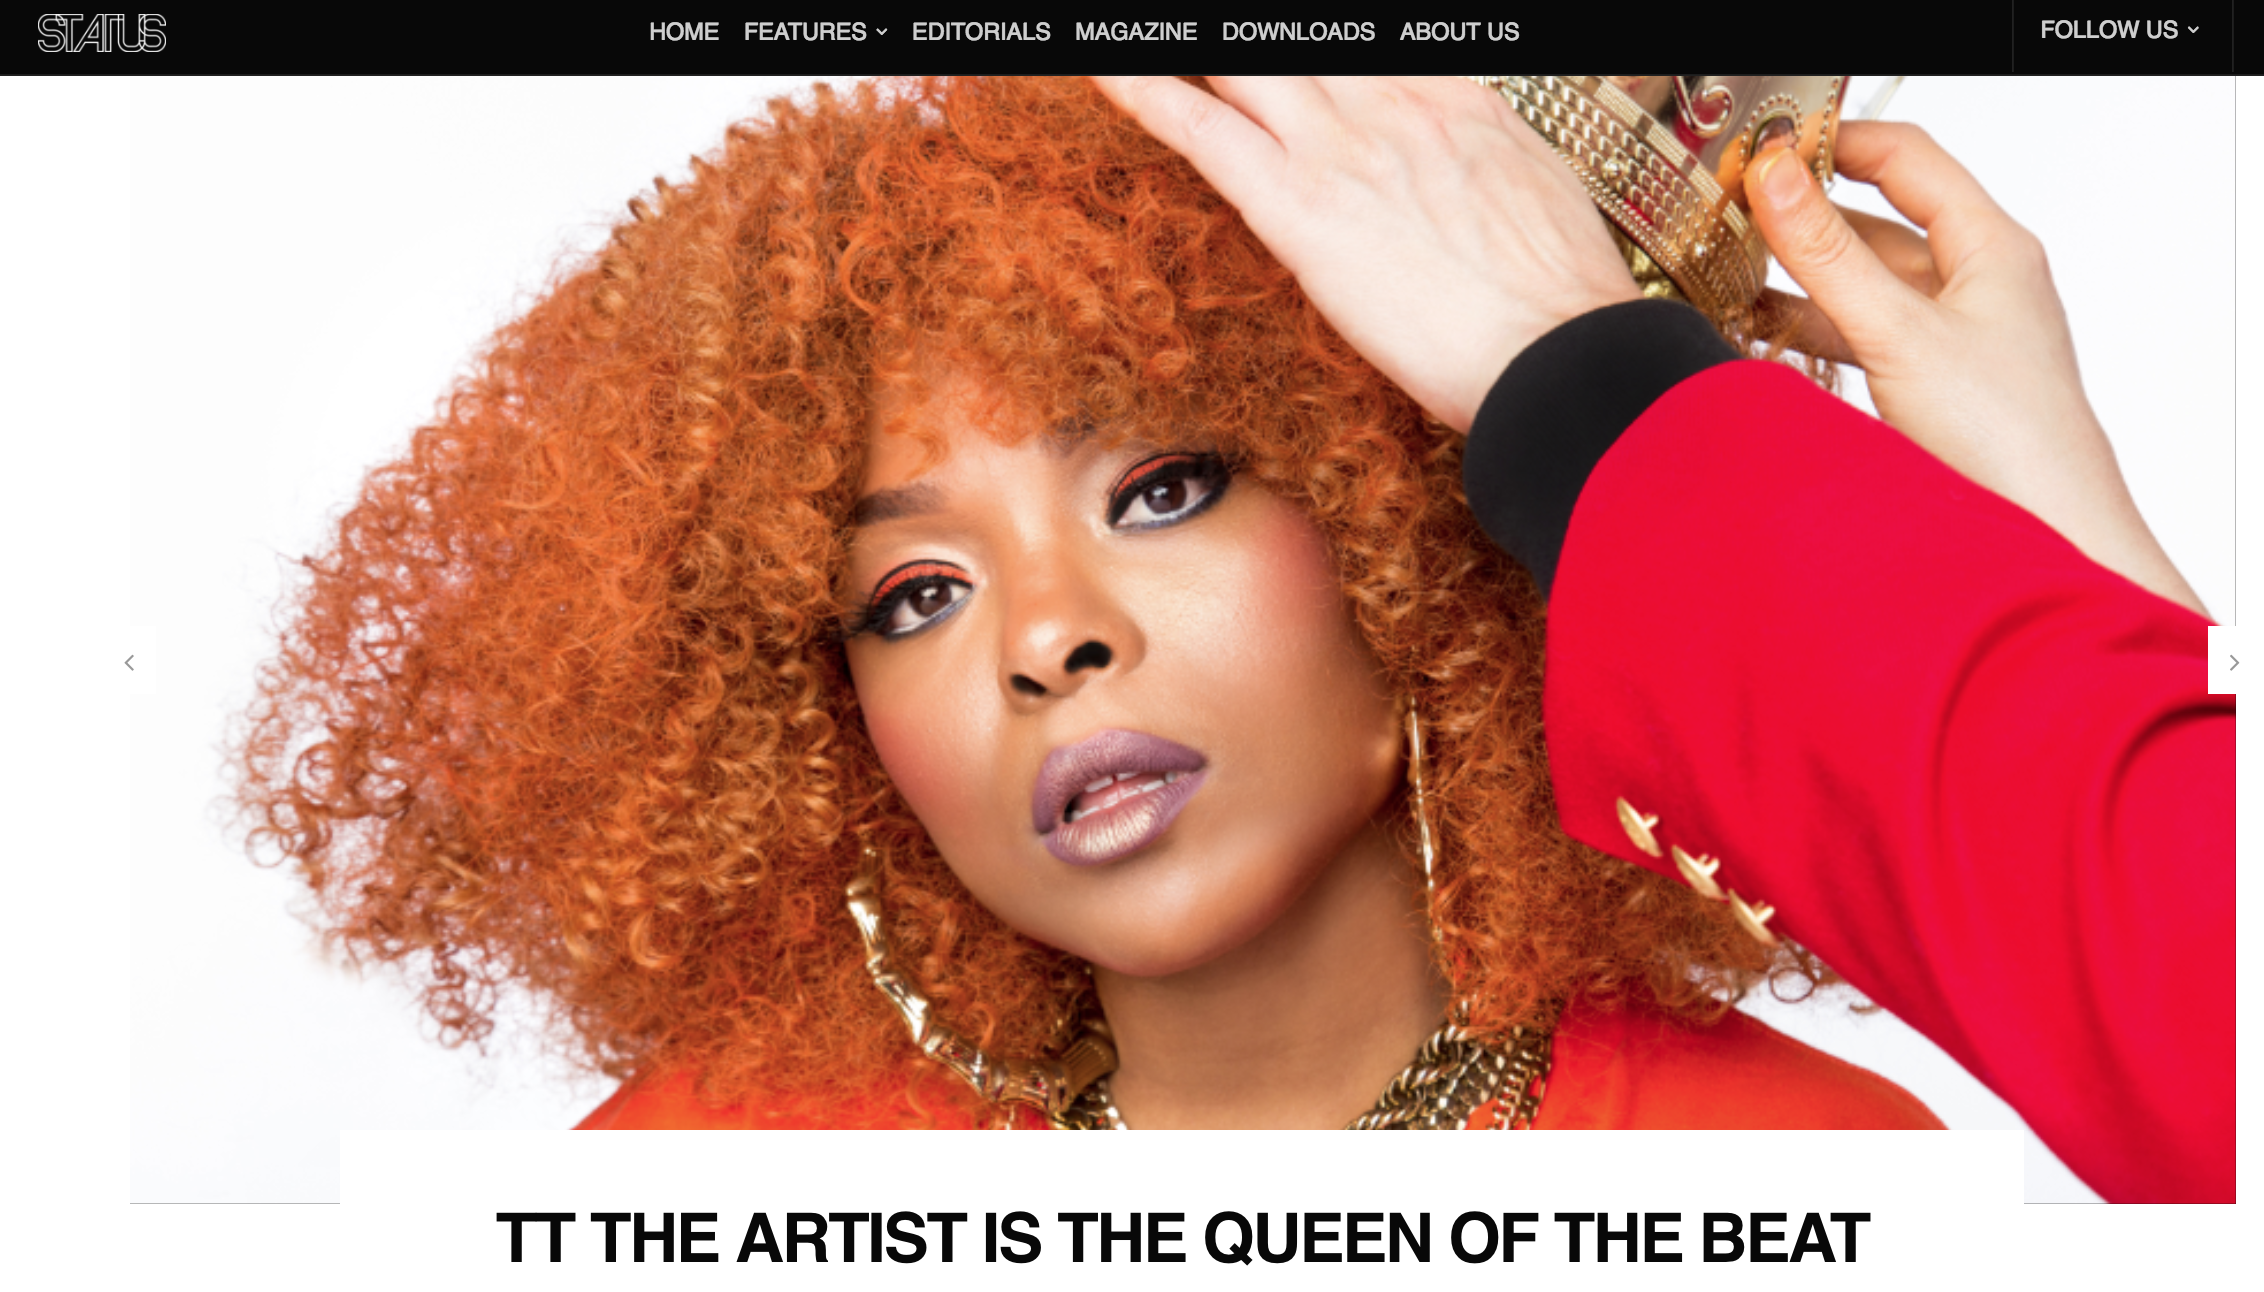 """Popping colors that groove with every drop of her verses and moves, TT THE ARTIST embodies her title as """"Queen of The Beat.""""  Baltimore-based singer, rapper, and producer Tedra Wilson, known as TT The Artist, is busting the streets with every shade in the color spectrum that graced her hair. Producing a collage of Baltimore club, Miami bass, electronic dance music, and party-rap, her music is an artistic bubble bursting all things hip and cool. Like a street artist that tags their signature on walls, her music leaves a mark in your brain on first listen.  Raised in a strict environment as a kid, she created TT the Artist as her image of a strong, independent woman capable of situations that she was vulnerable to. Growing up in Fort Lauderdale, Florida, she was culturally inspired by the music that was present at her time, varying from Miami Bass, Southern hip hop, and '90s dance music. Her moniker is more than just a title but a devotion. She exhibits her high regard for women, most especially in the hip-hop scene. With songs like """"Fly Girl"""" paving the way for new female artists like Colada to enter the music industry, TT the Artist is a party that won't stop till she drops.  CLICK LINK TO READ FULL INTERVIEW  http://statusmagonline.com/features/tt-the-artist-interview-may-2018/"""